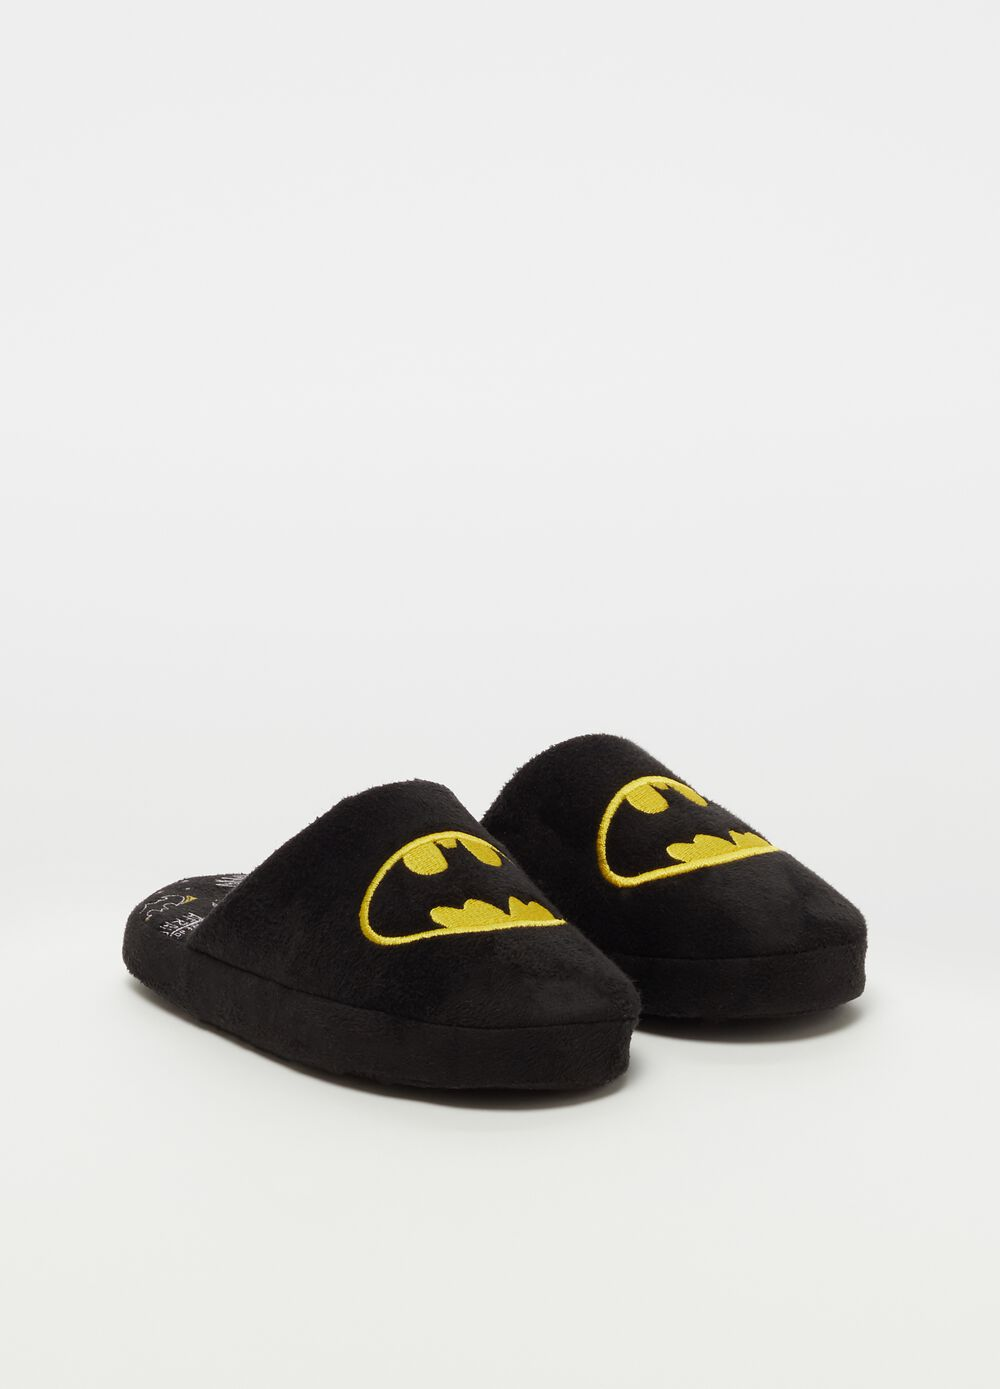 Warner Bros Batman slippers with embroidery [DC COMICS]